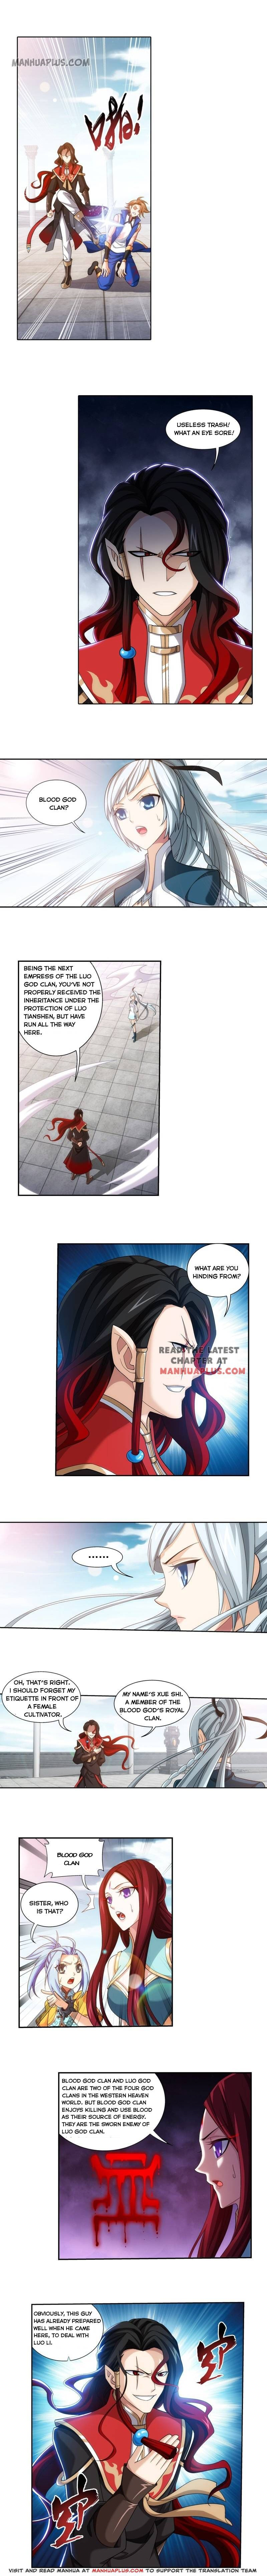 The Great Ruler ch.182